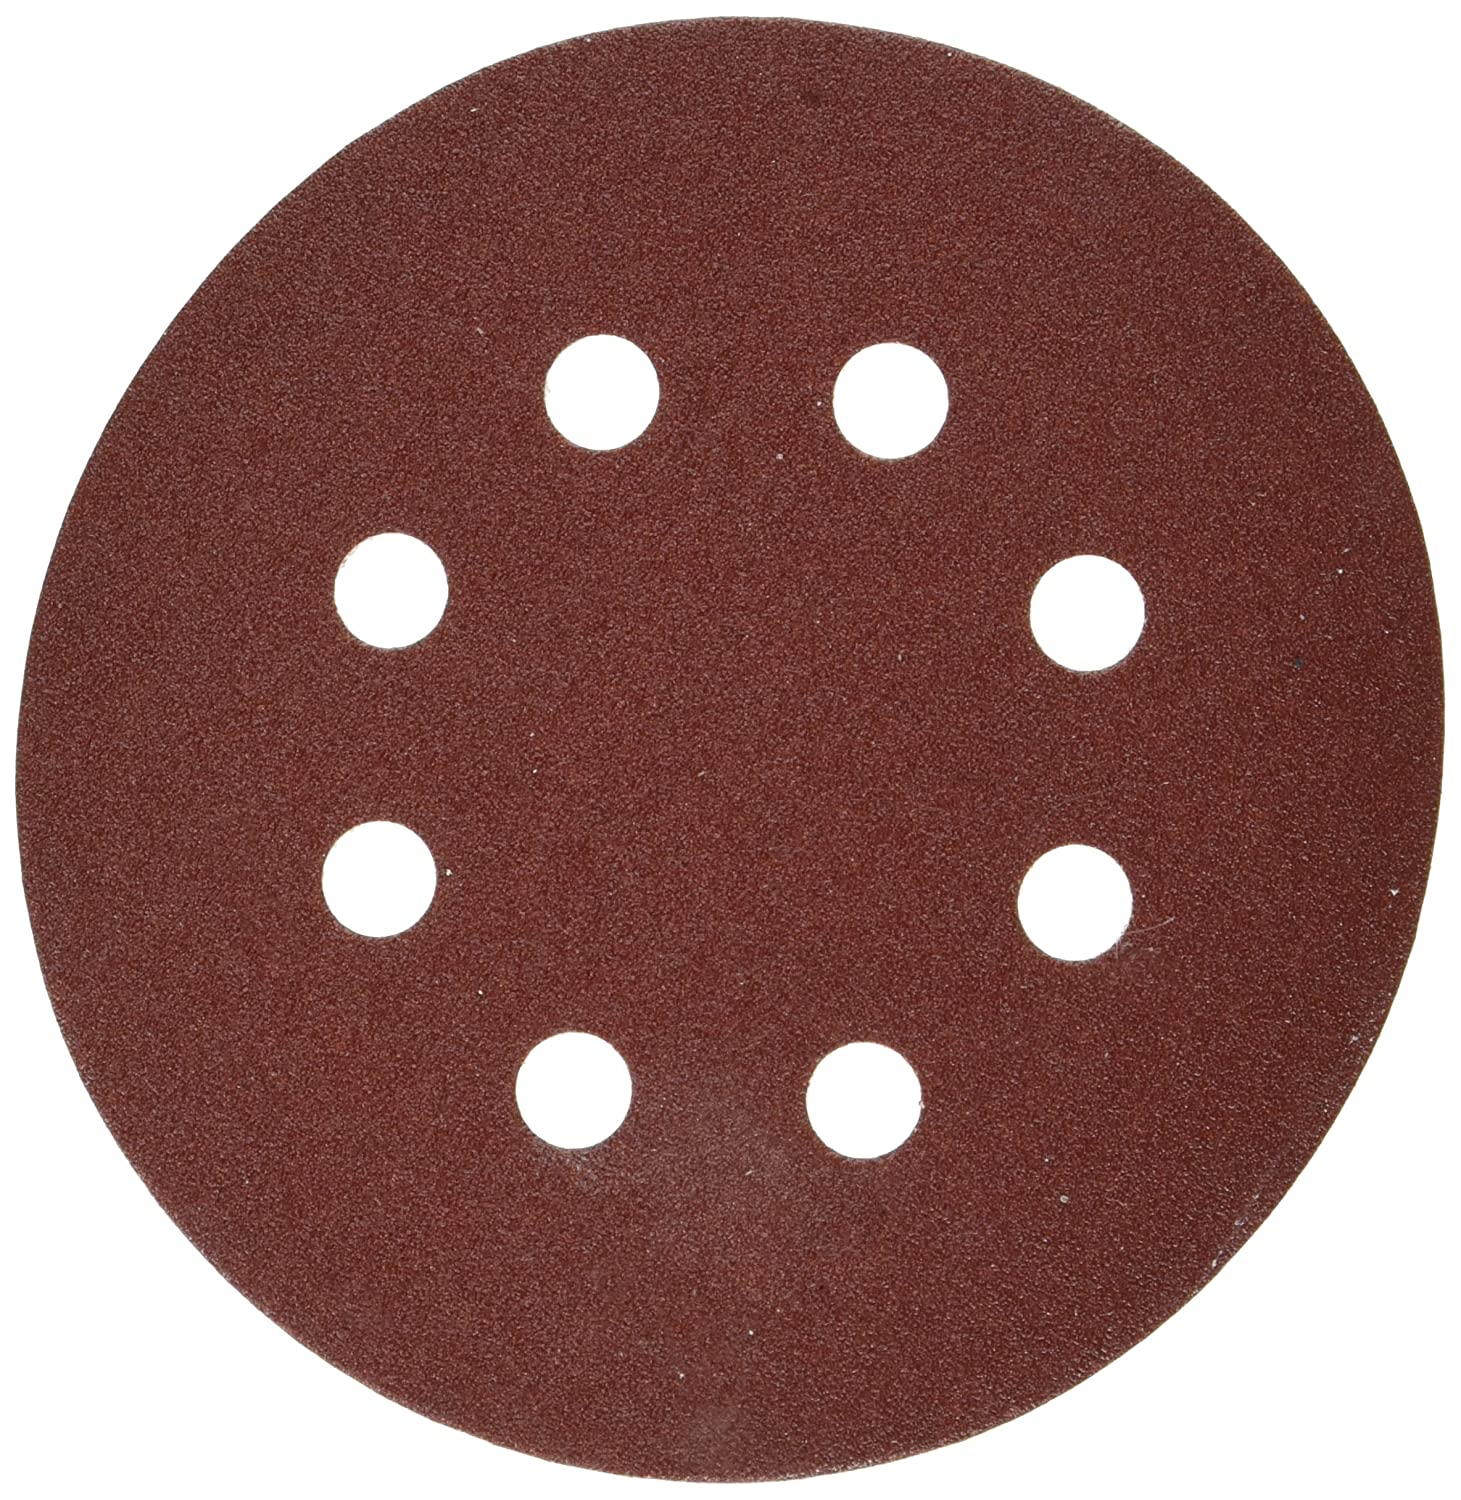 Makita P-43577 125 mm Punched 120 Grit Abrasive Disc - Multi-Colour